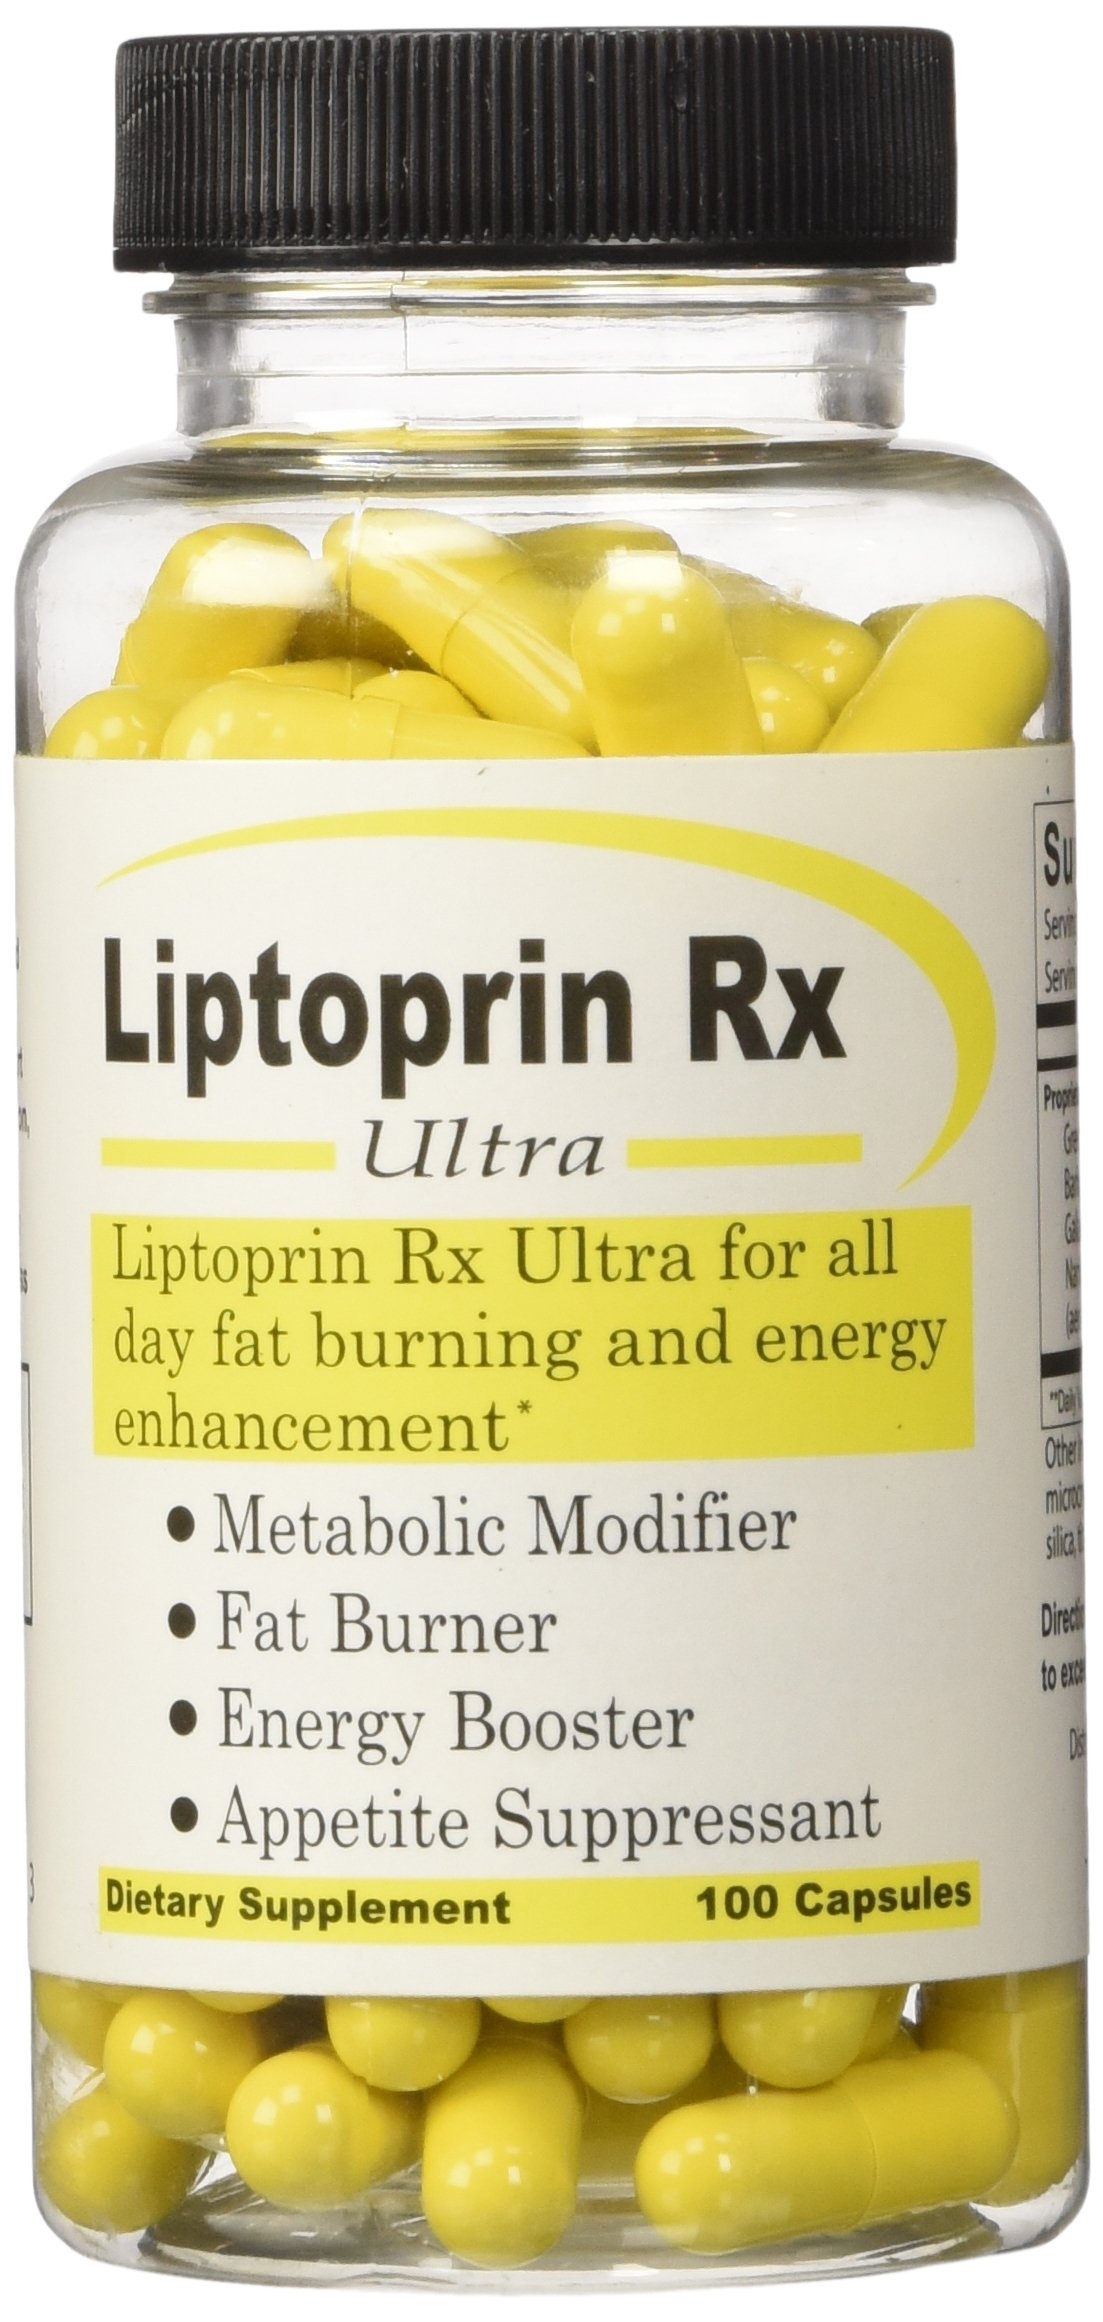 Liptoprin-Rx Ultra - Best Metabolism Booster Diet and Weight Loss Supplement Fat Burner Appetite Suppressant Pills Lose Weight Fast Natural Energy Booster 100 Capsules